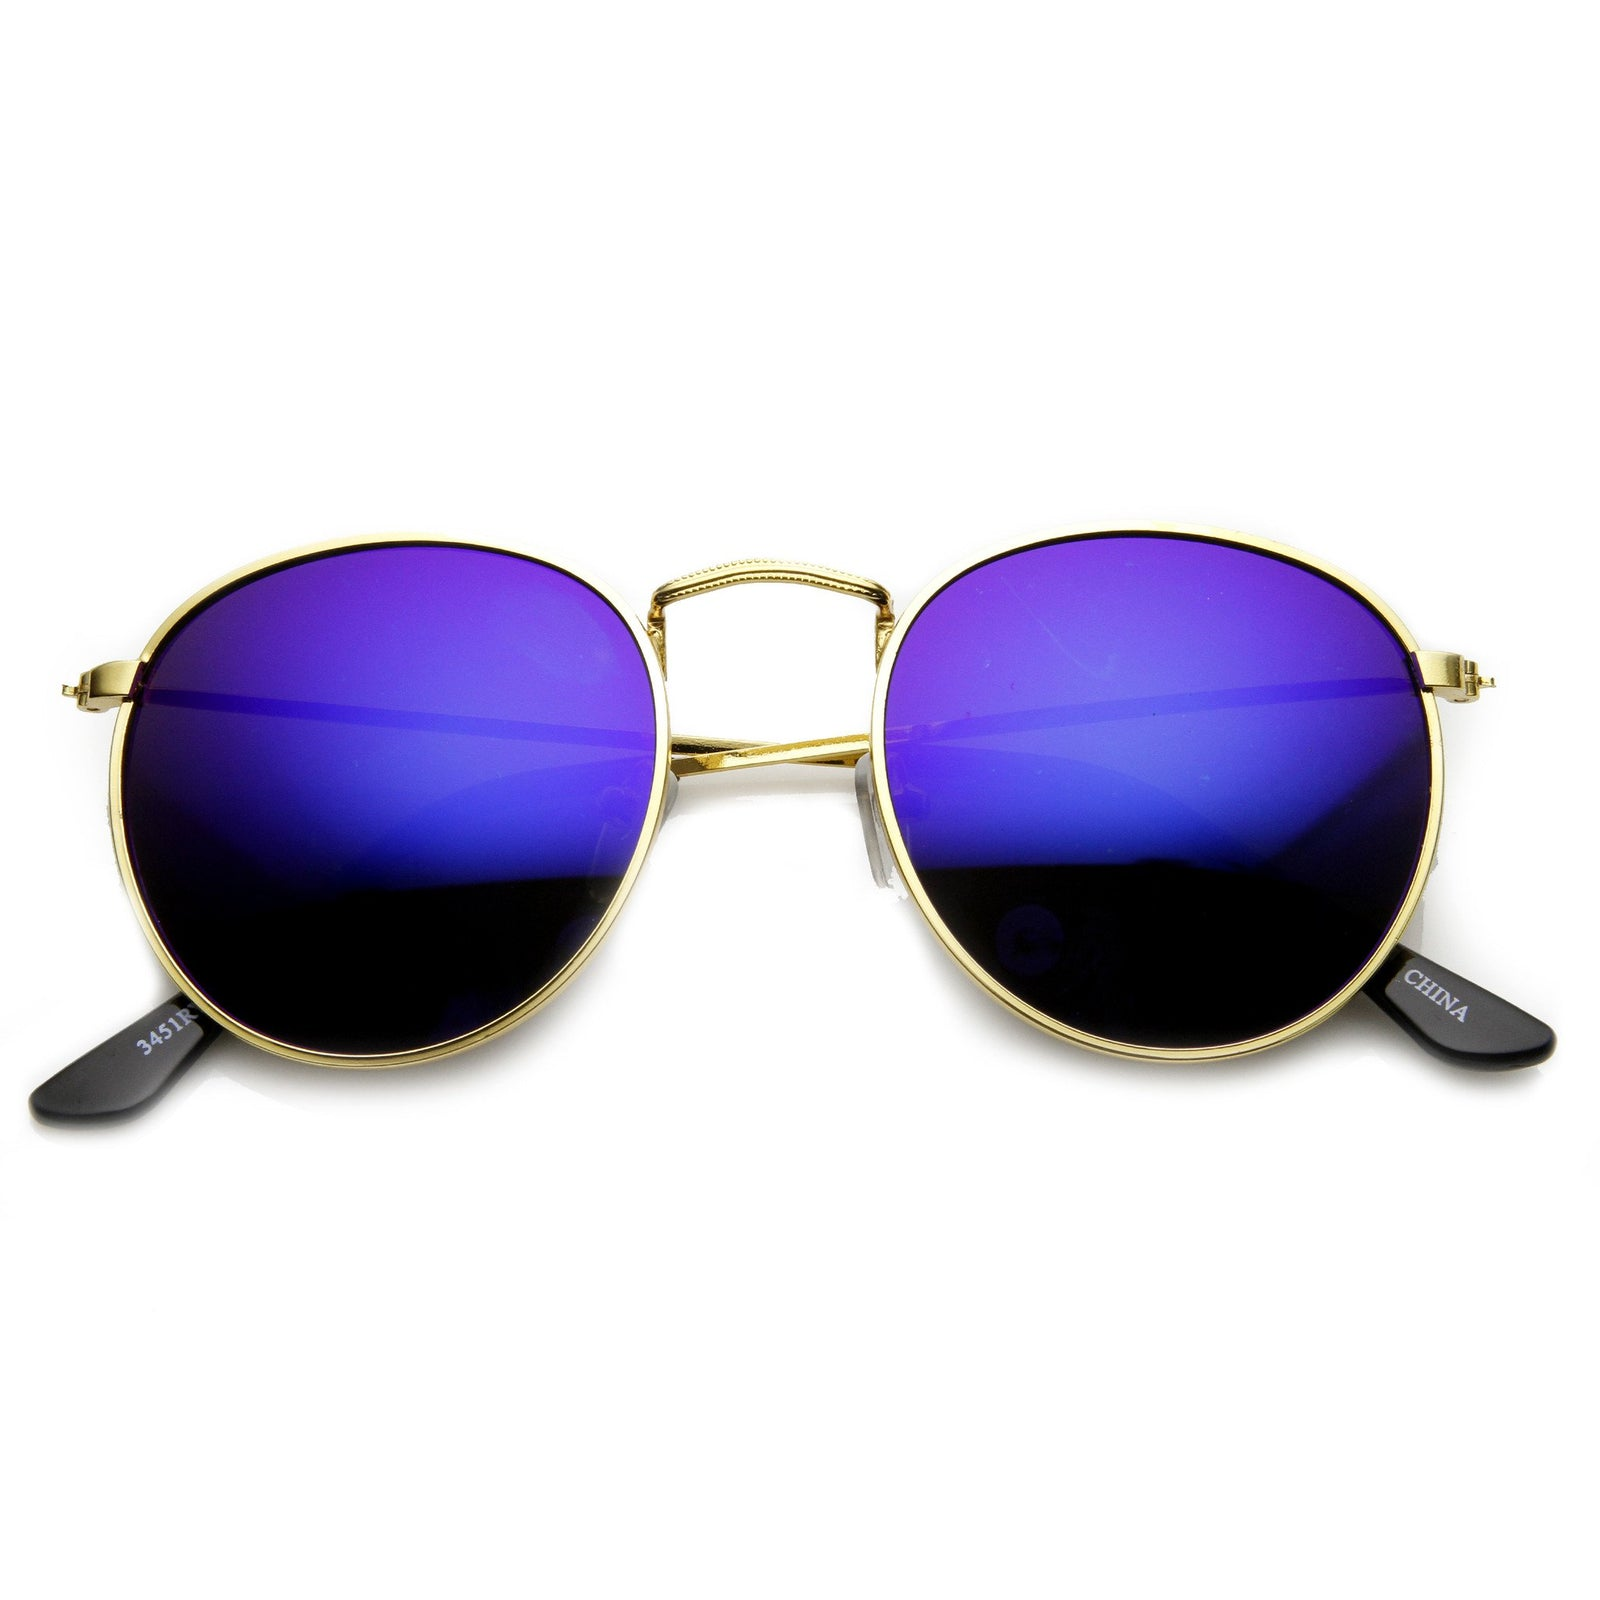 c049d3fa9f80 Retro P3 Round Flash Color Mirror Lens Metal Sunglasses 9208